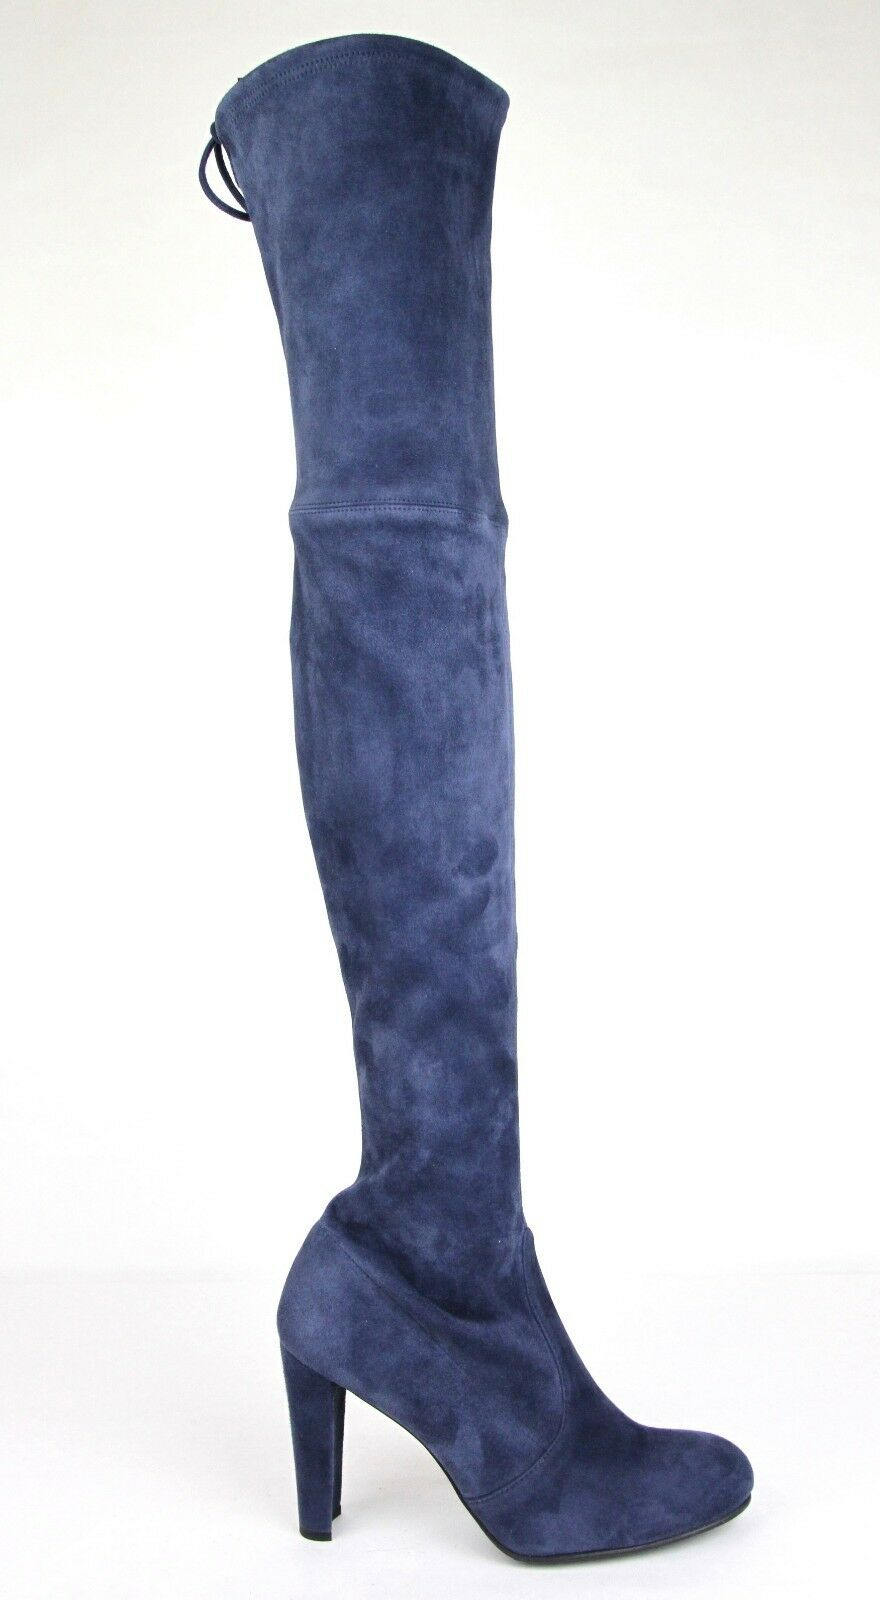 798 Nueva Stuart Weitzman agradable azul Suede Highland over-the-Rodilla Bota